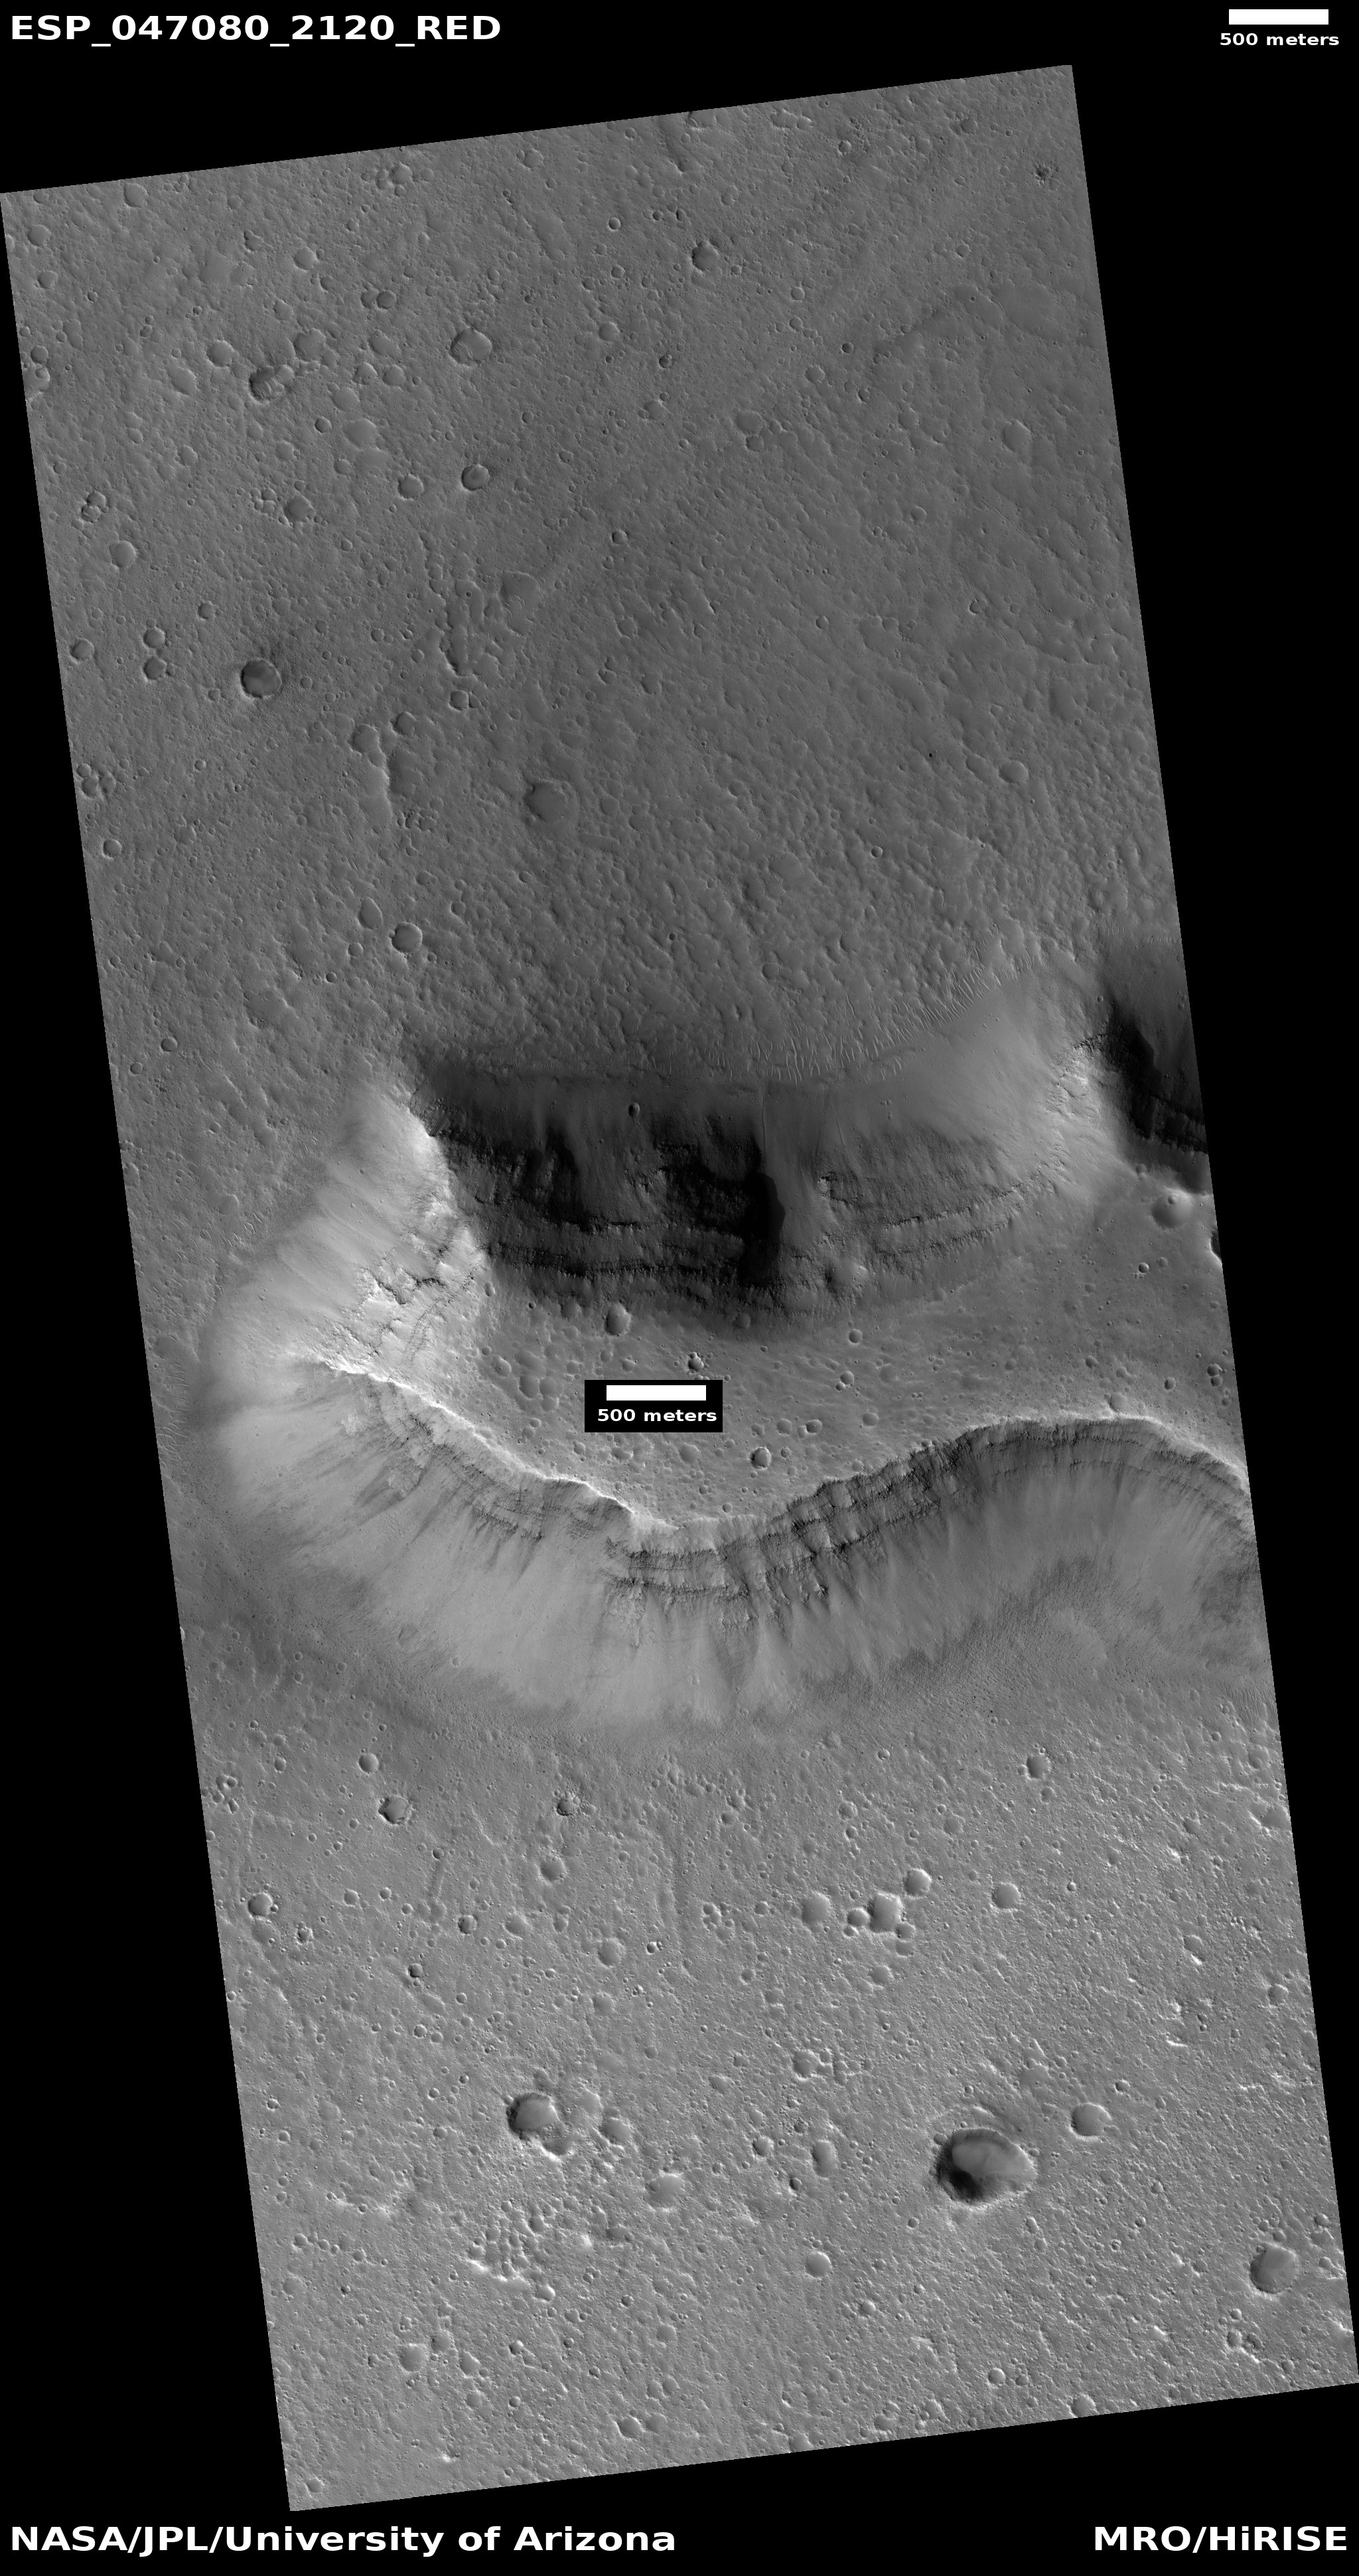 Layers in mesa, as seen by HiRISE under HiWish program